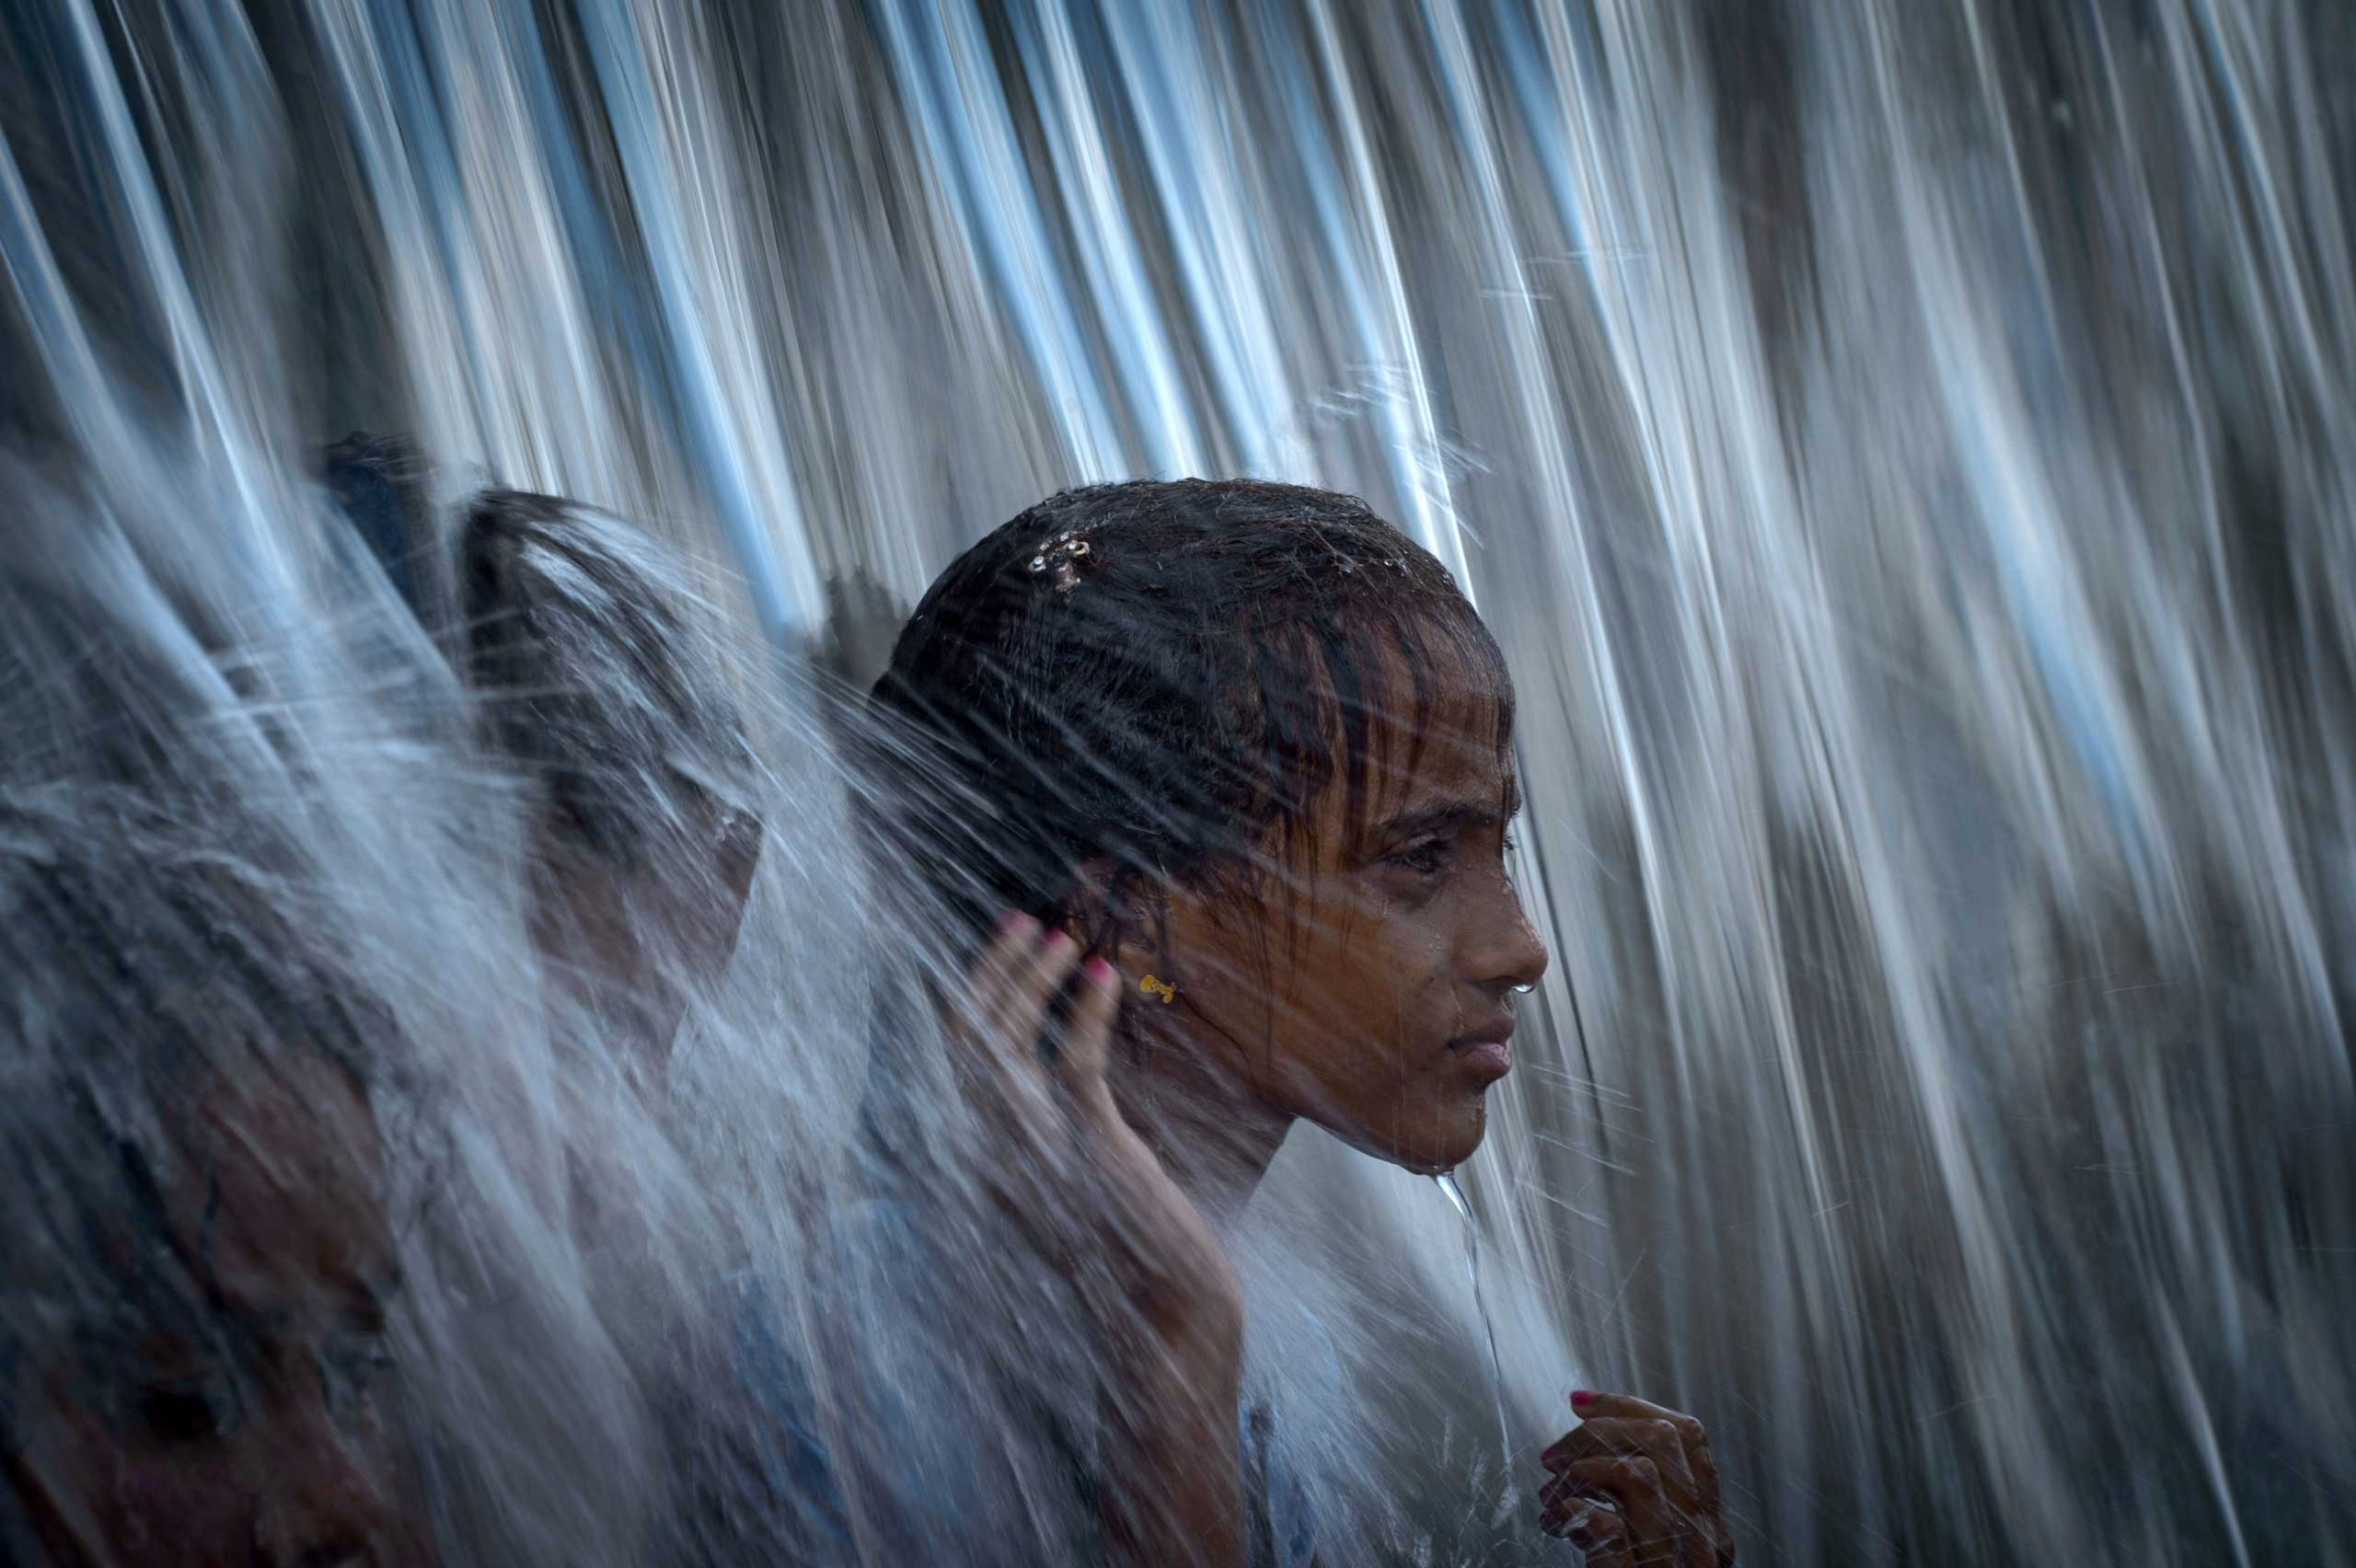 Jan. 25, 2015. A girl plays with a curtain of water at Madureira park in Rio de Janeiro, Brazil.